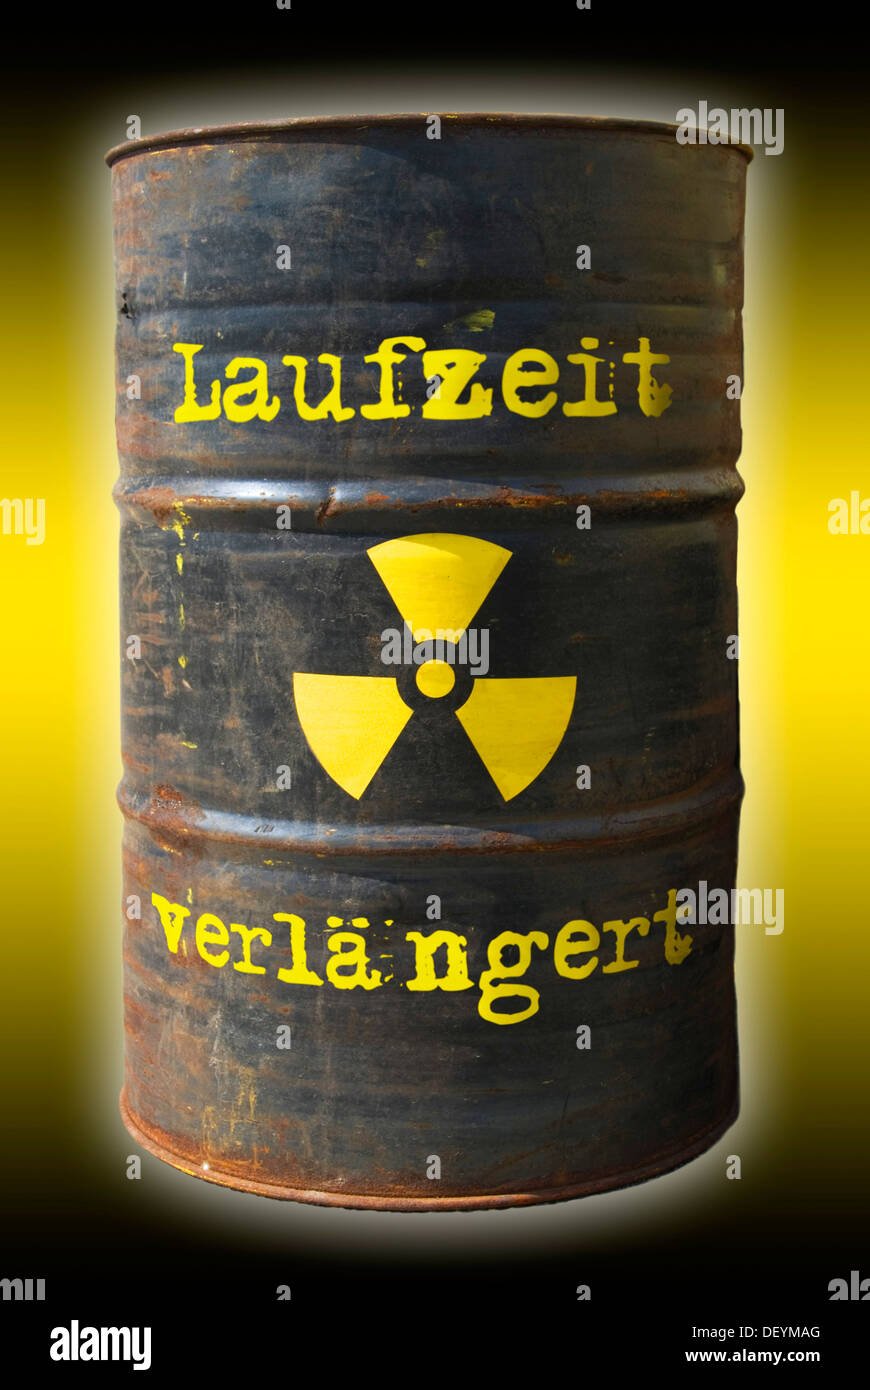 Rusty barrel with a radiation warning symbol and lettering 'Laufzeit verlaengert', German for 'extended runtime' - Stock Image